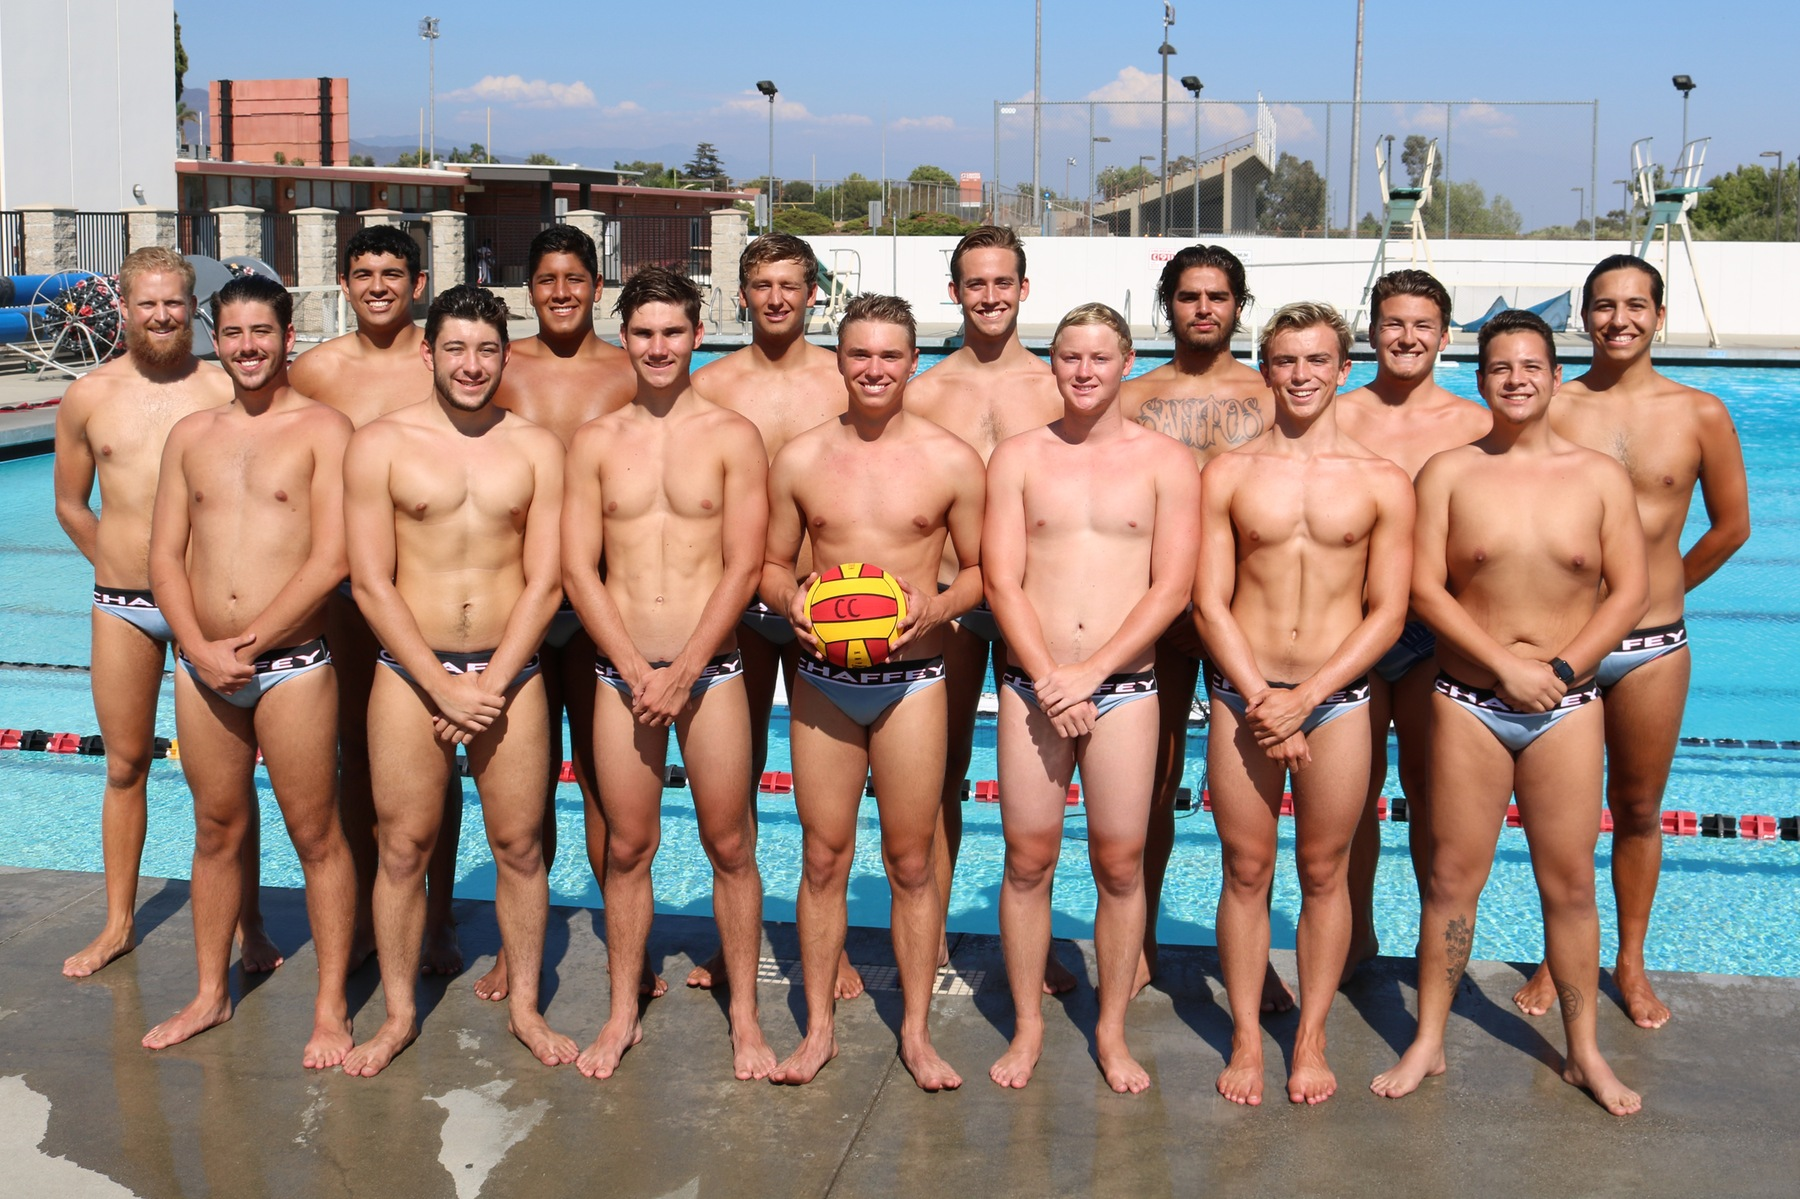 2018 Men's Water Polo team on the pool deck